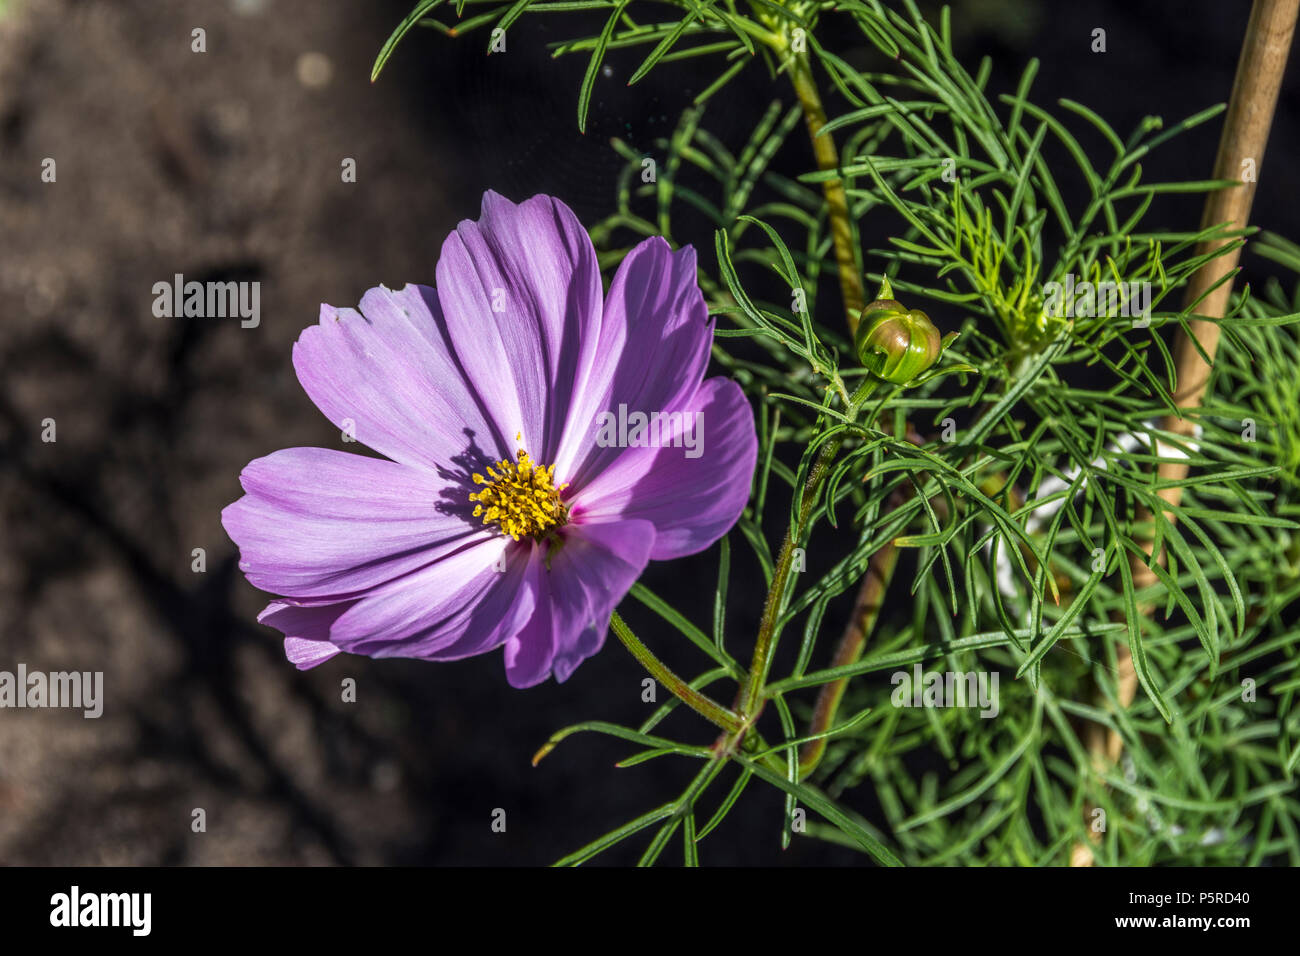 Cosmos Are Herbaceous Perennial Plants Or Annual Plants Purple